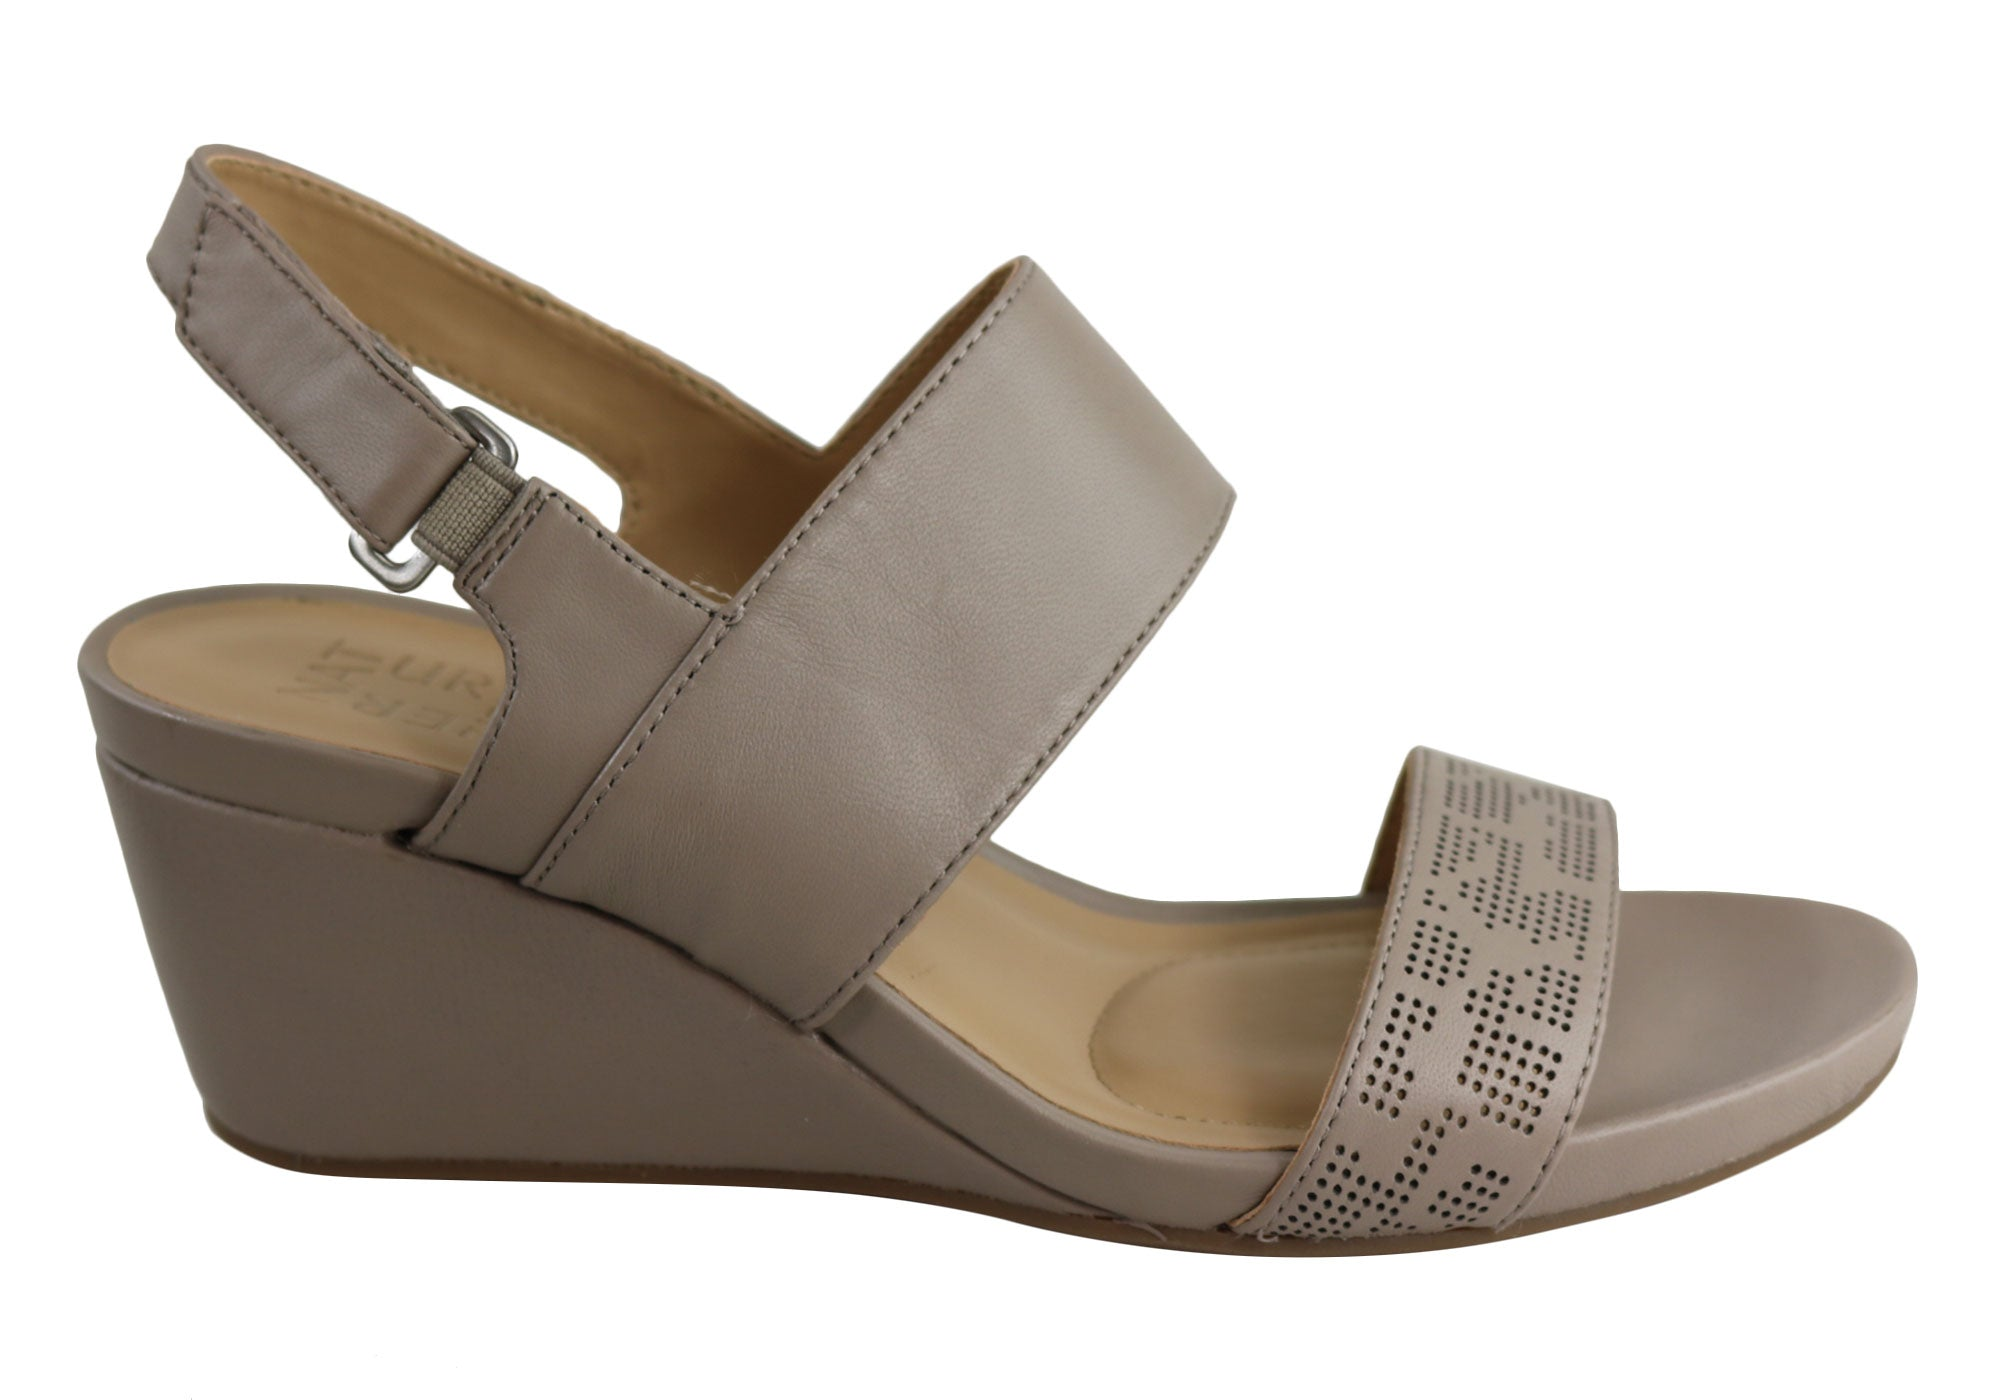 7d8066e94a Home Naturalizer Callas Womens Comfort Wide Fit Leather Wedge Sandals.  Taupe ...